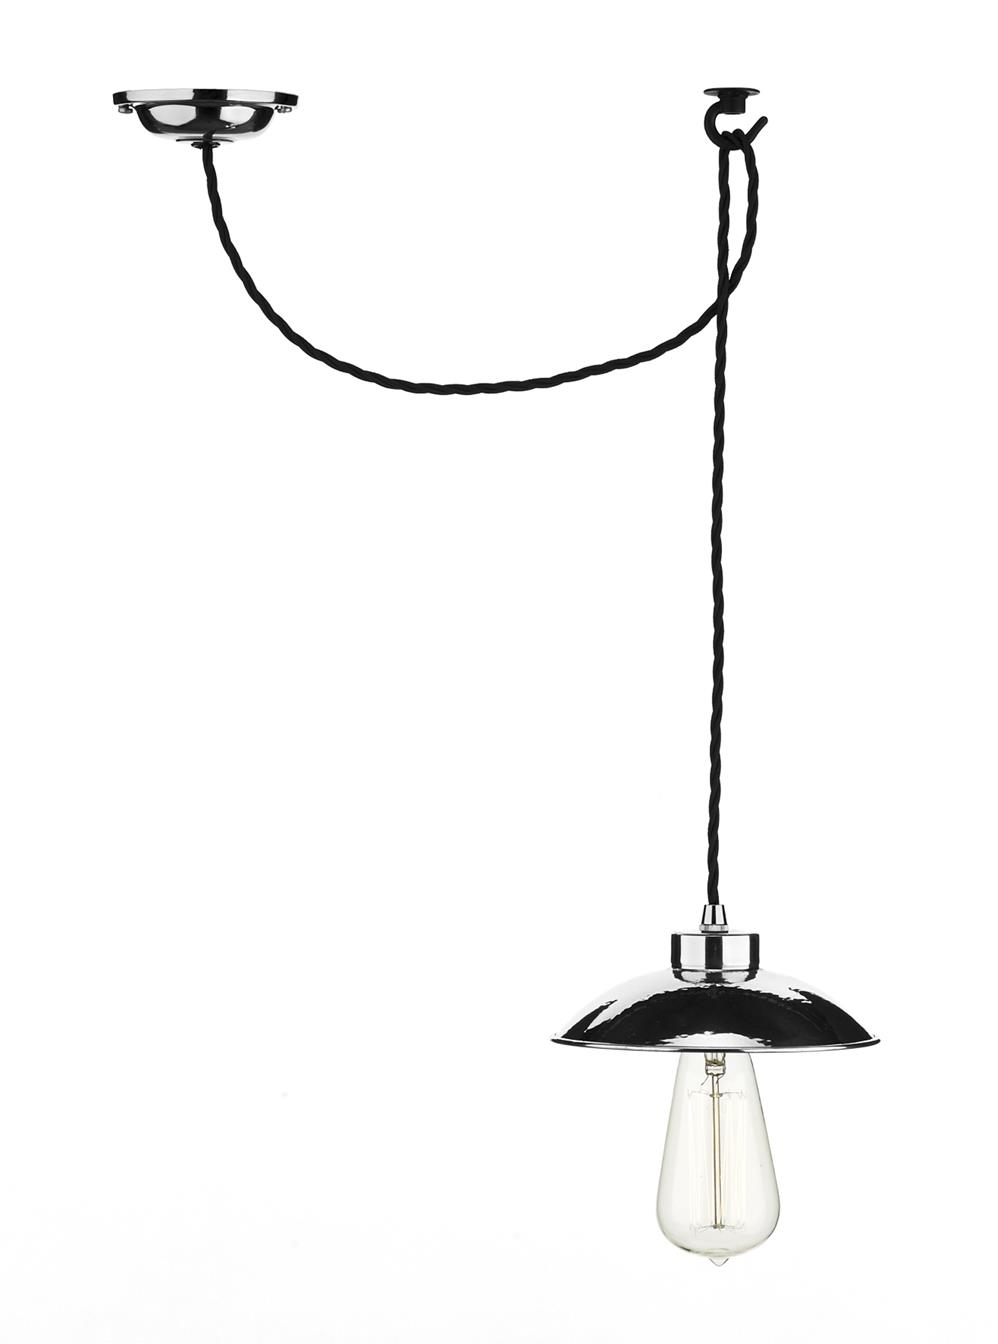 David Hunt Lighting ACC64 Dallas Spare Black Hook for DAL0150 & DAL0164